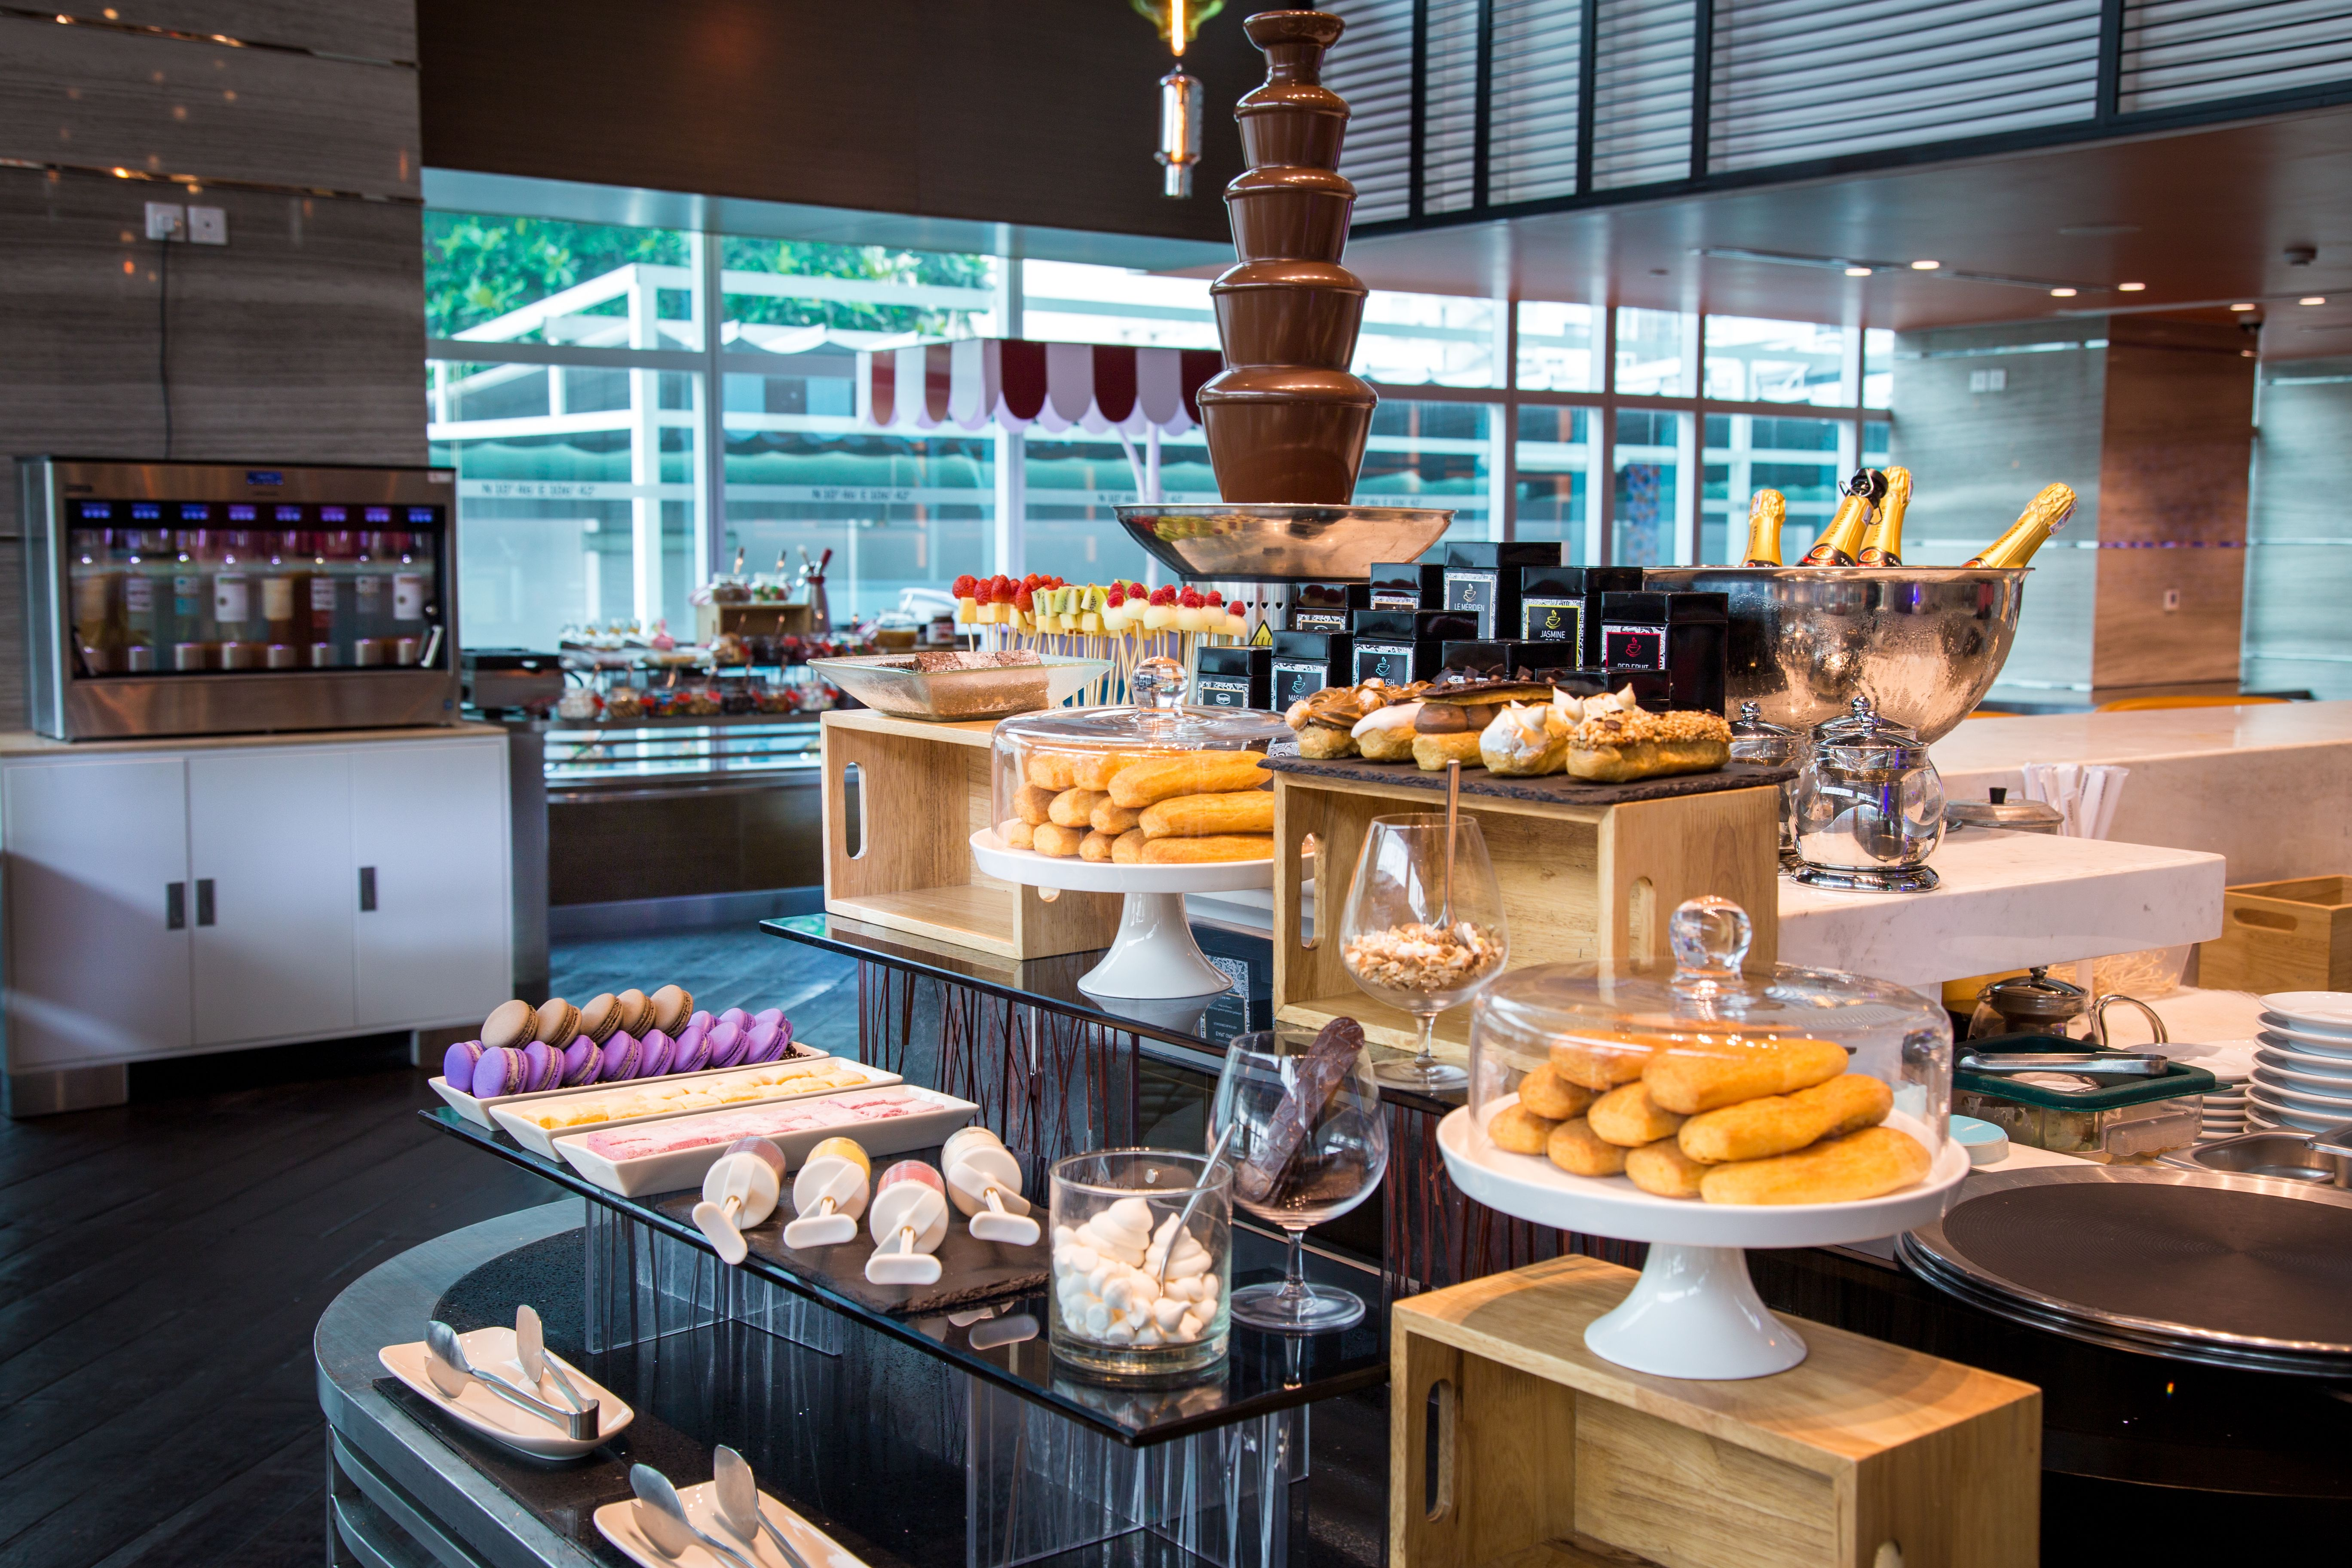 Sunday Discovery, Brunch Around at Latitude 10, Le Meridien Saigon, Nha Hang Buffet